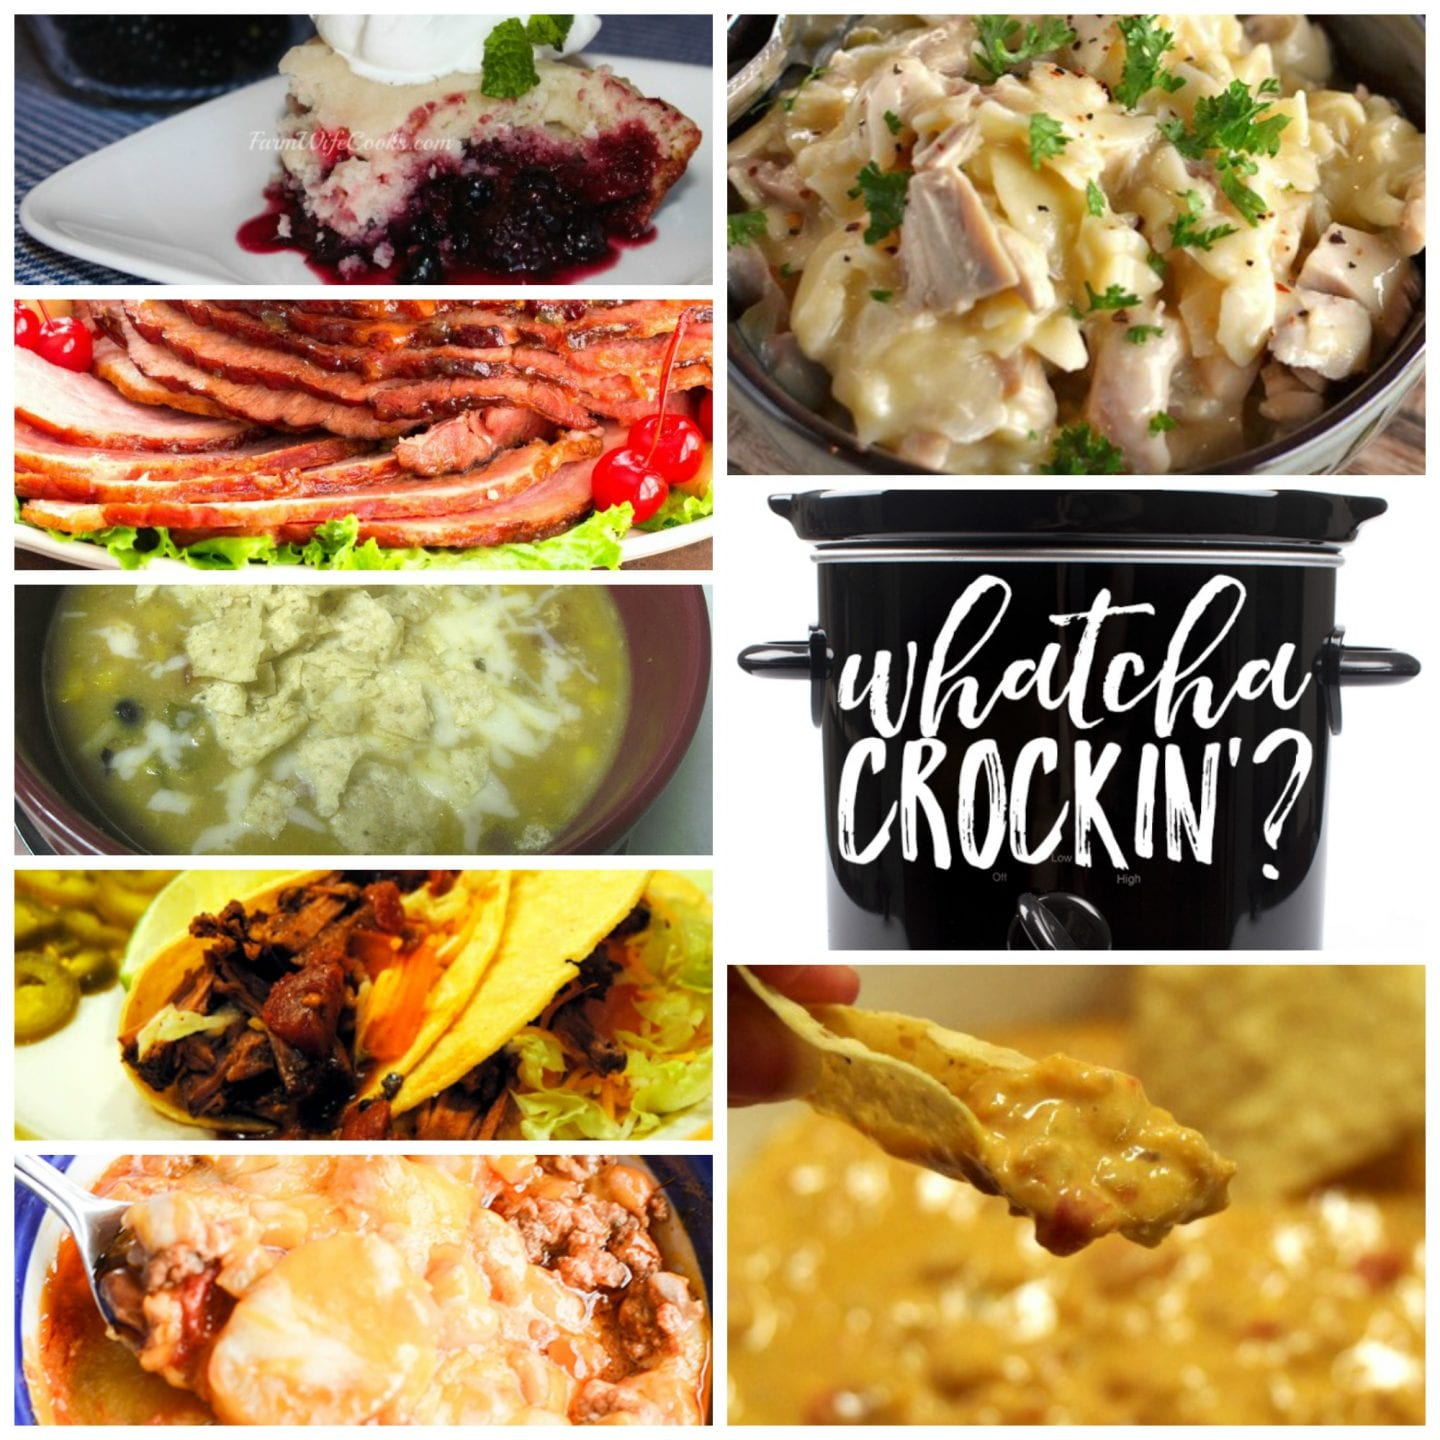 This week's Whatcha Crockin' crock pot recipes include Slow Cooker Chicken and Noodles, Slow Cooker Chicken Enchilada Soup, Crock Pot Cowboy Casserole, Mixed Berry Dump Cake, Slow Cooked Pineapple Brown Sugar Glazed Ham, Texas Queso Dip, Slow Cooker Mexican Pot Roast Tacos and much more!